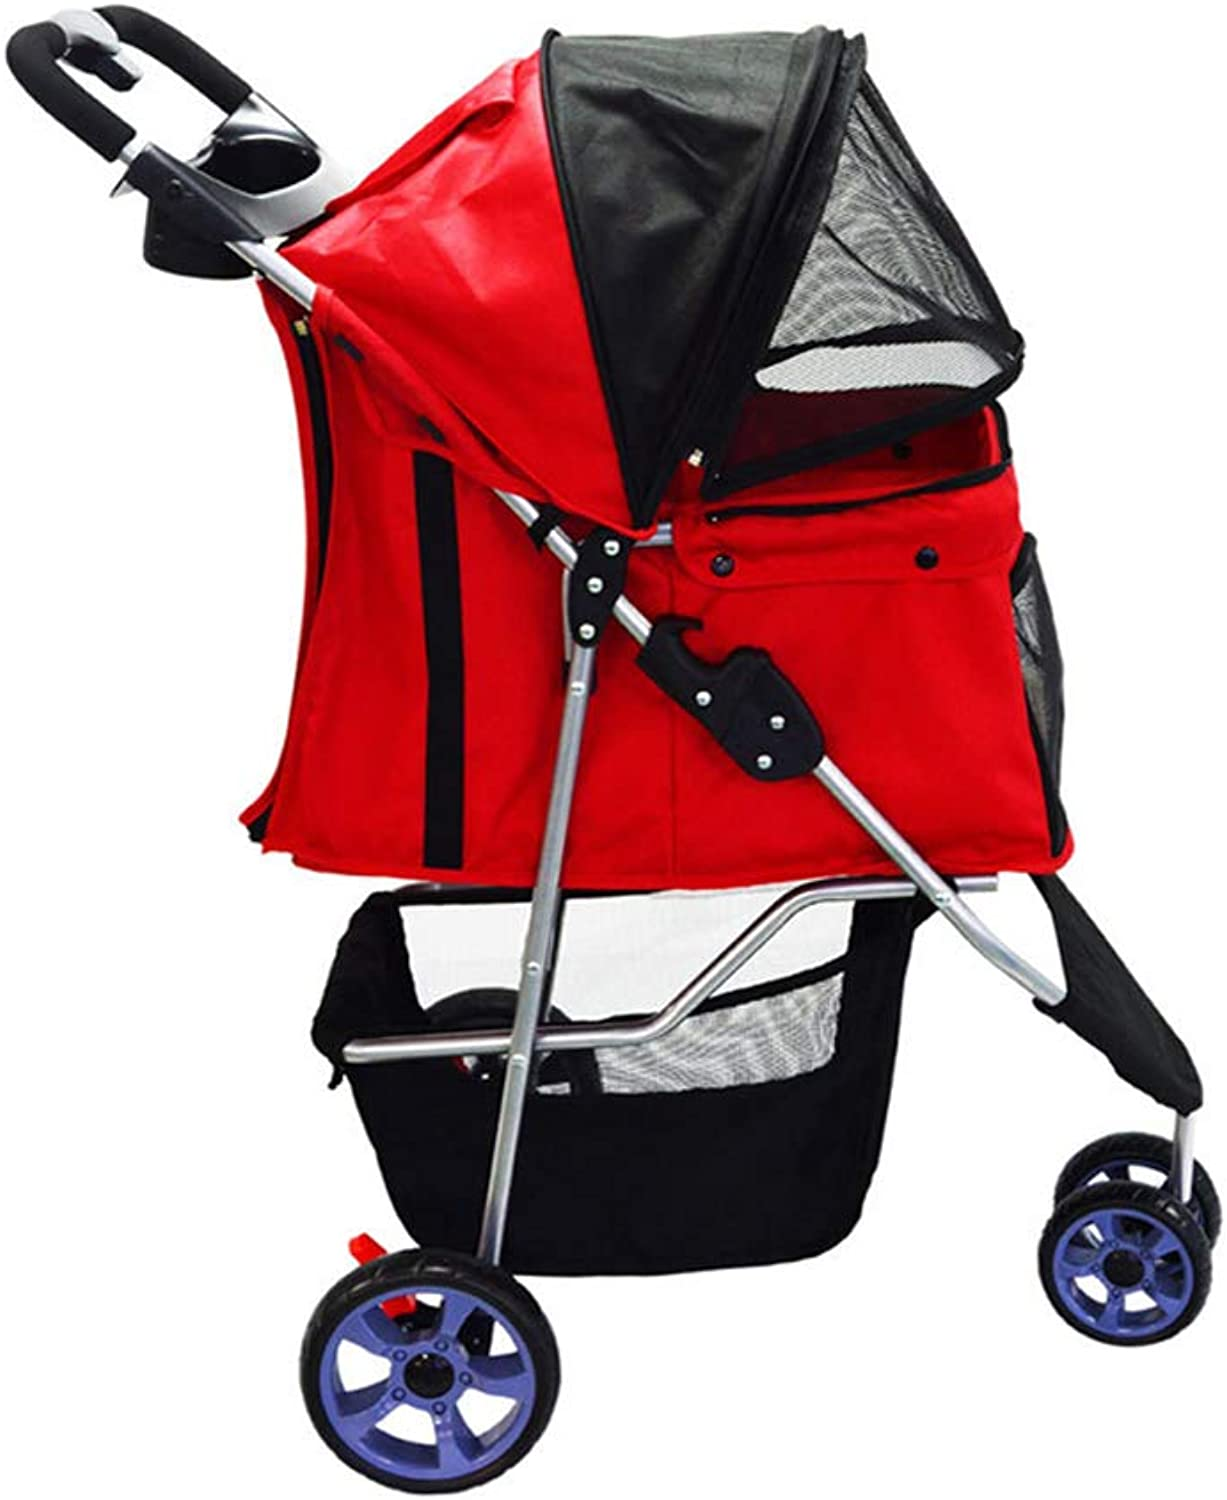 HAO SHOP Small And Mediumsized Dogs Outdoor Waterproof Washable Cart, Folding Pet Stroller,Red